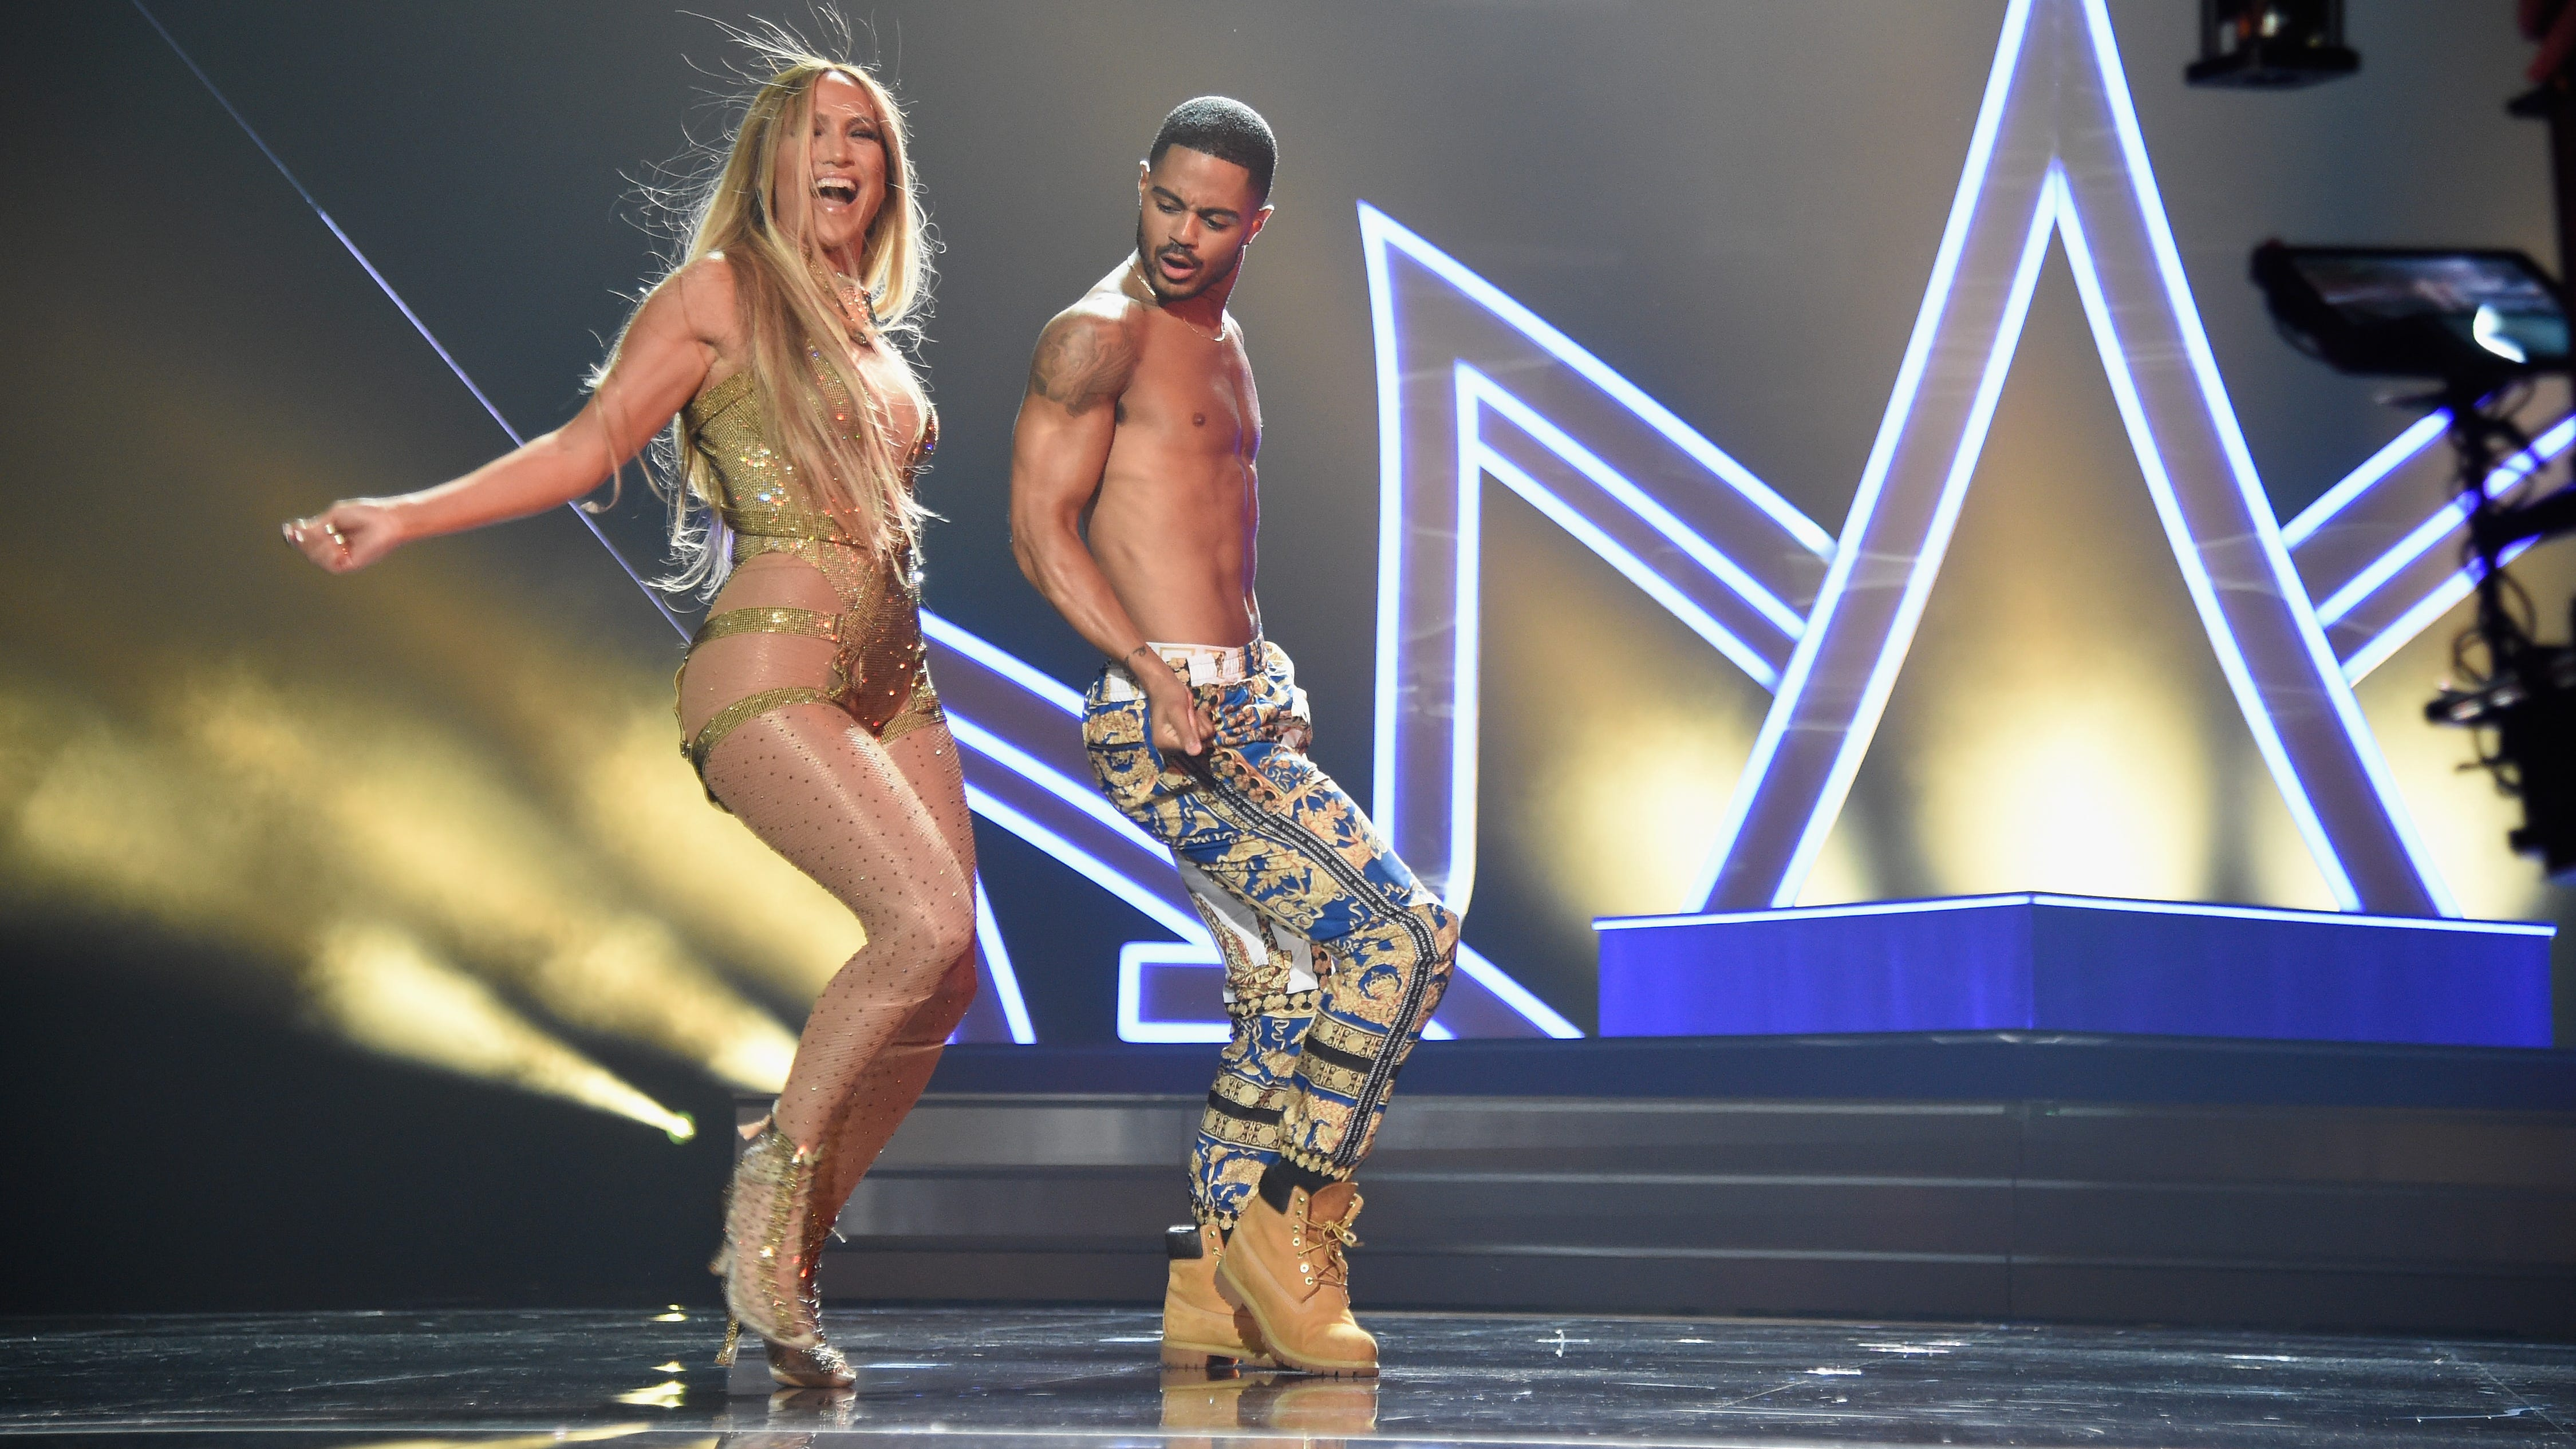 NEW YORK, NY - AUGUST 20: Jennifer Lopez performs onstage during the 2018 MTV Video Music Awards at Radio City Music Hall on August 20, 2018 in New York City.  (Photo by Kevin Mazur/WireImage) ORG XMIT: 775211585 ORIG FILE ID: 1020399670